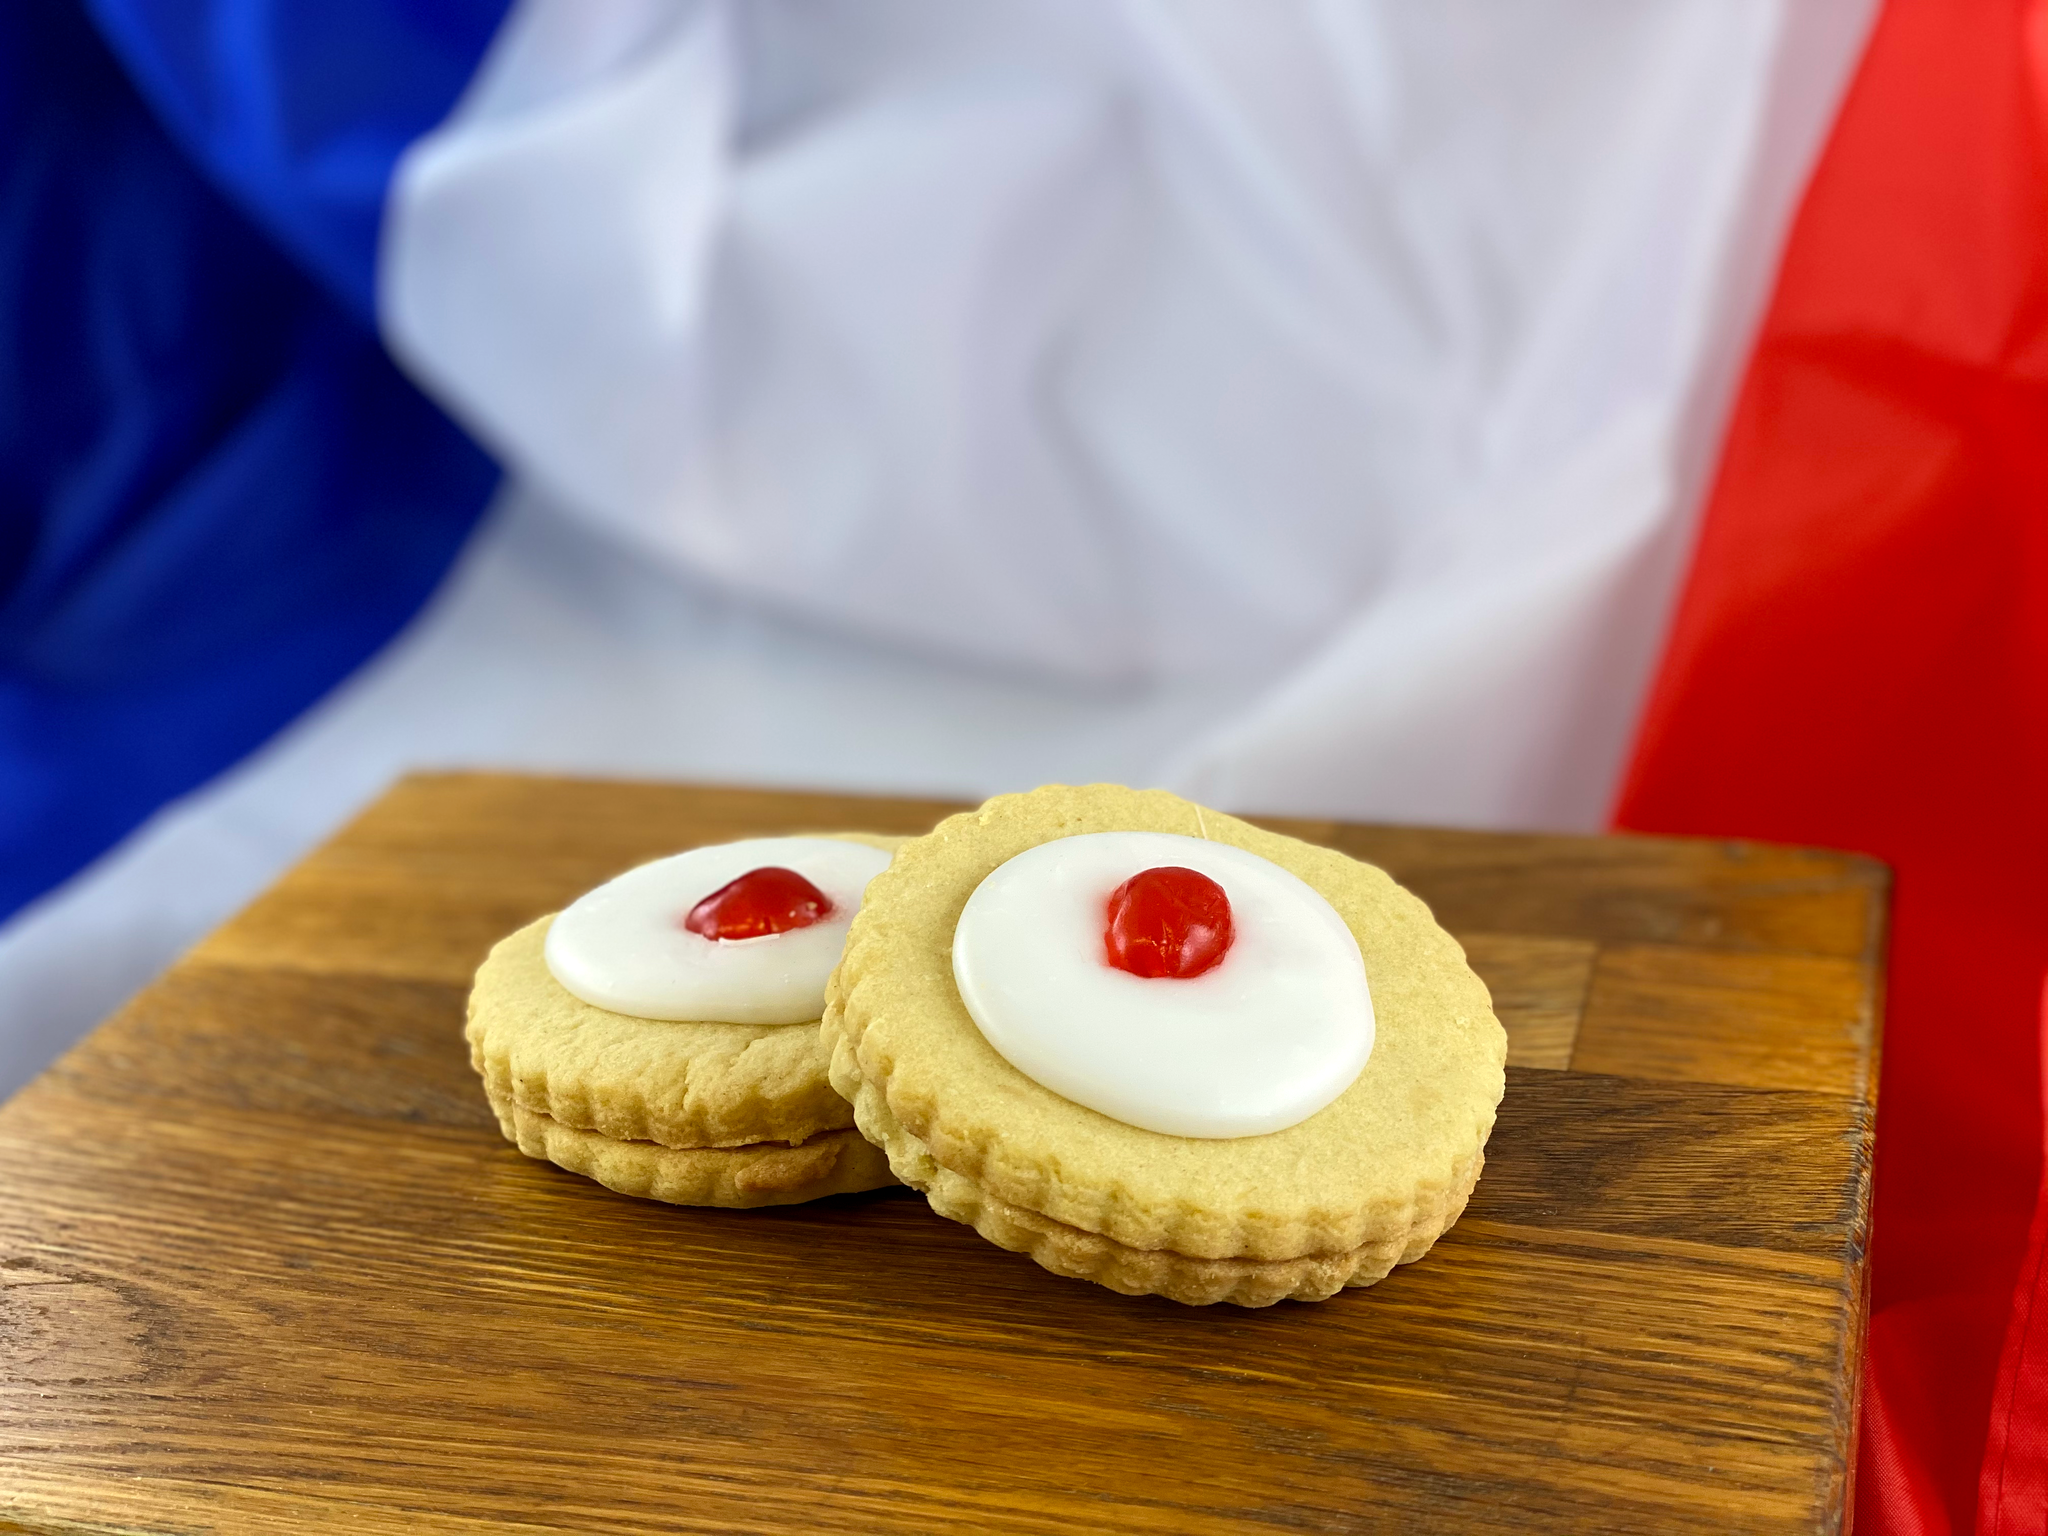 French Oven: Two Empire Biscuits